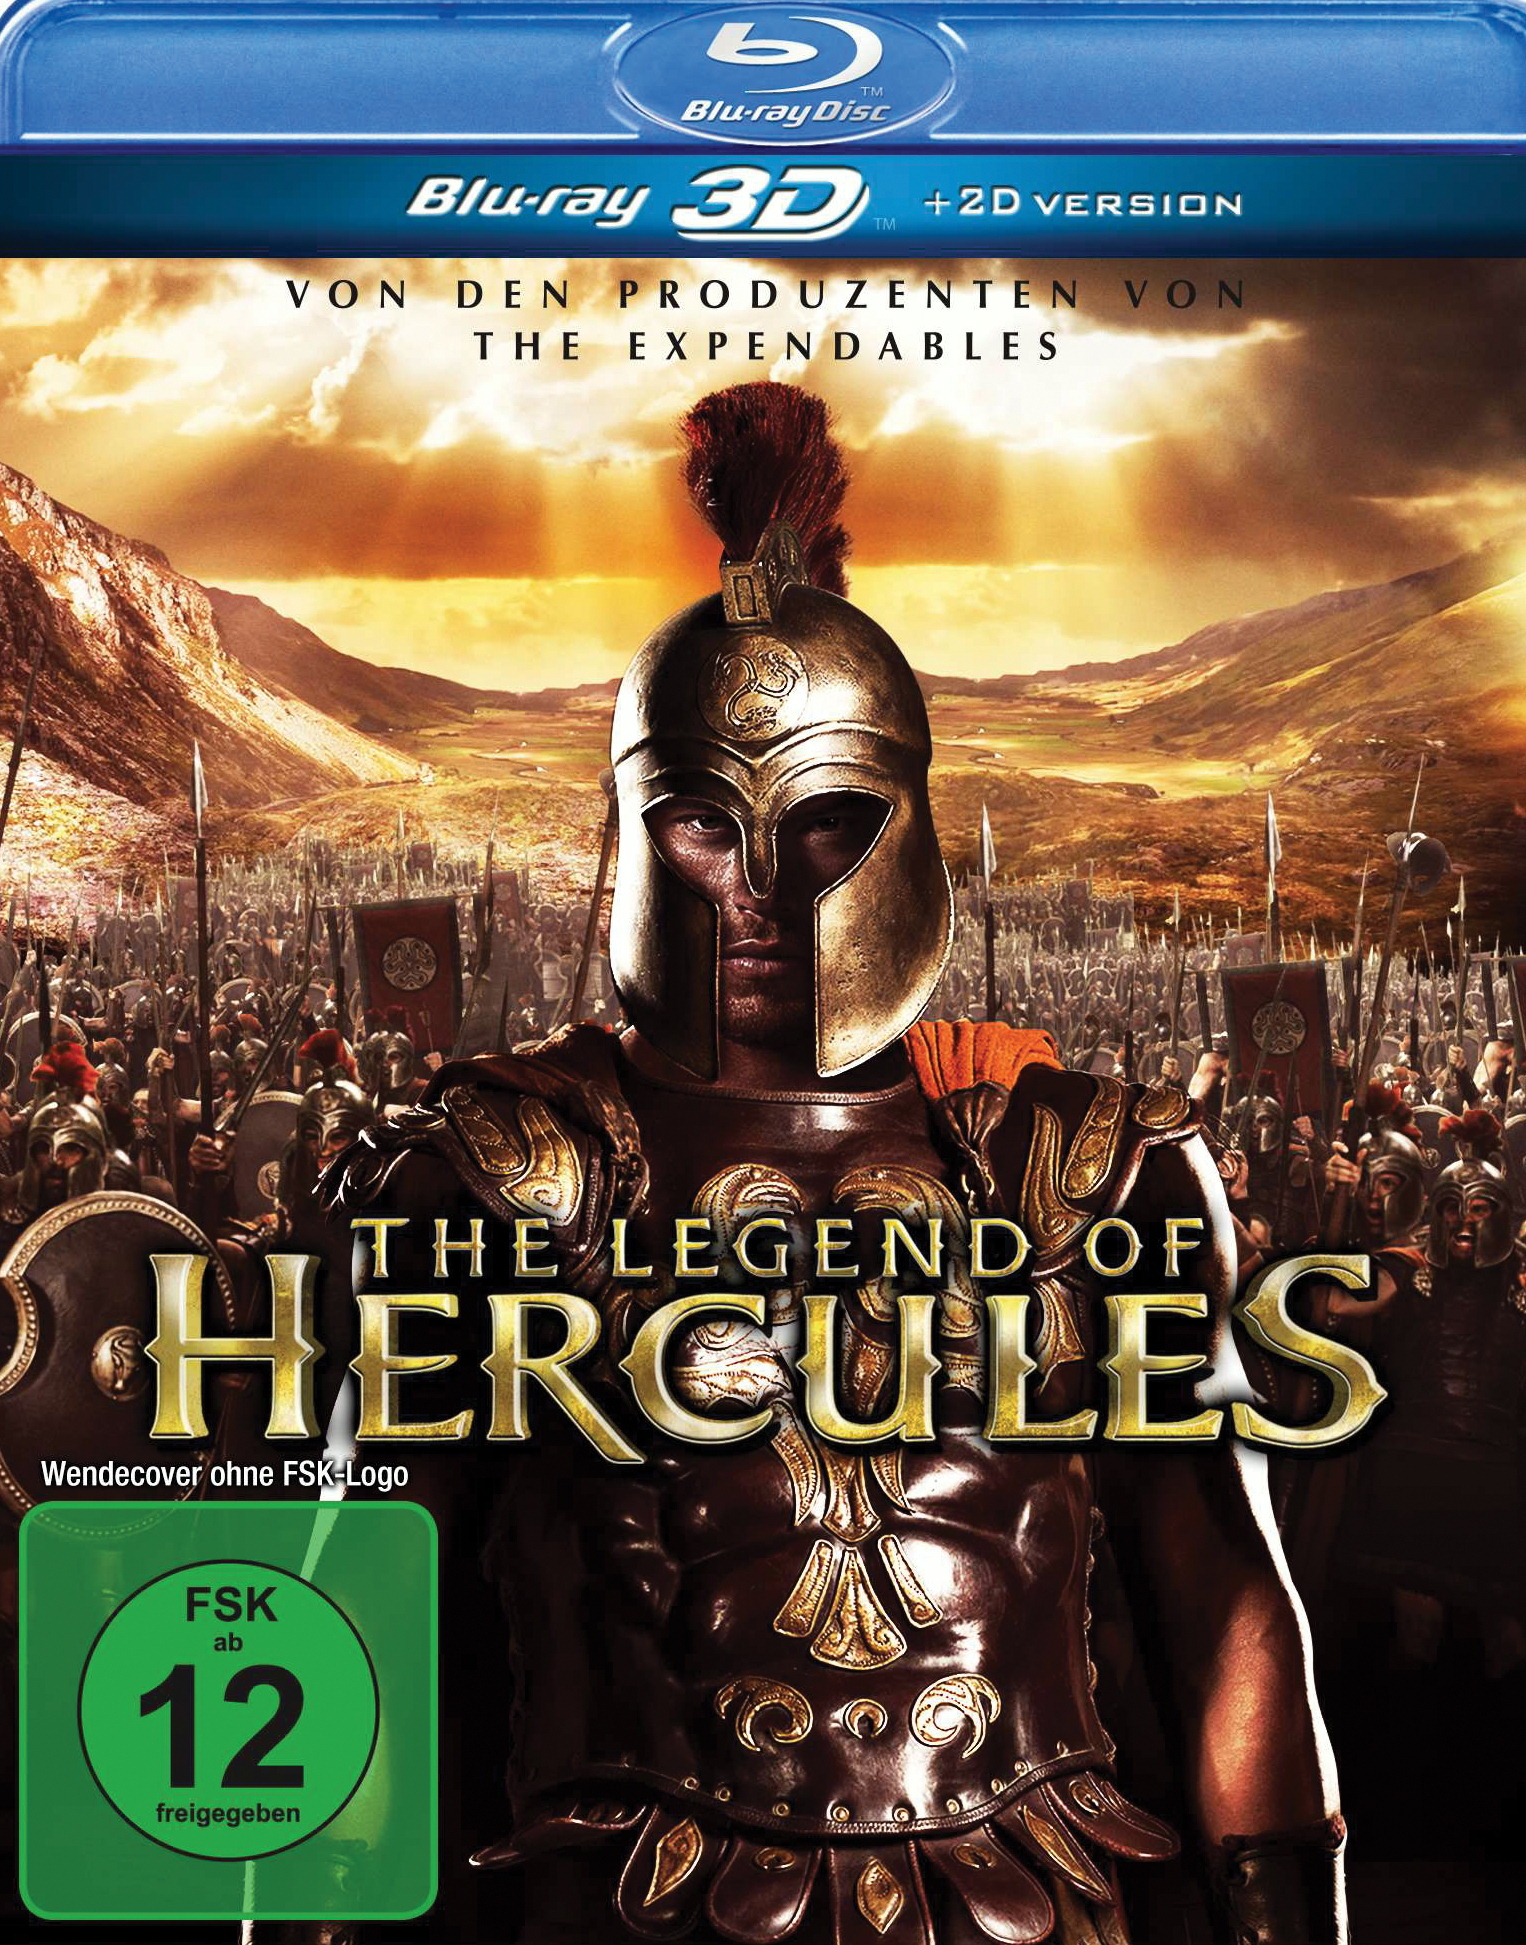 The Legend of Hercules (Blu-ray 3D) Poster